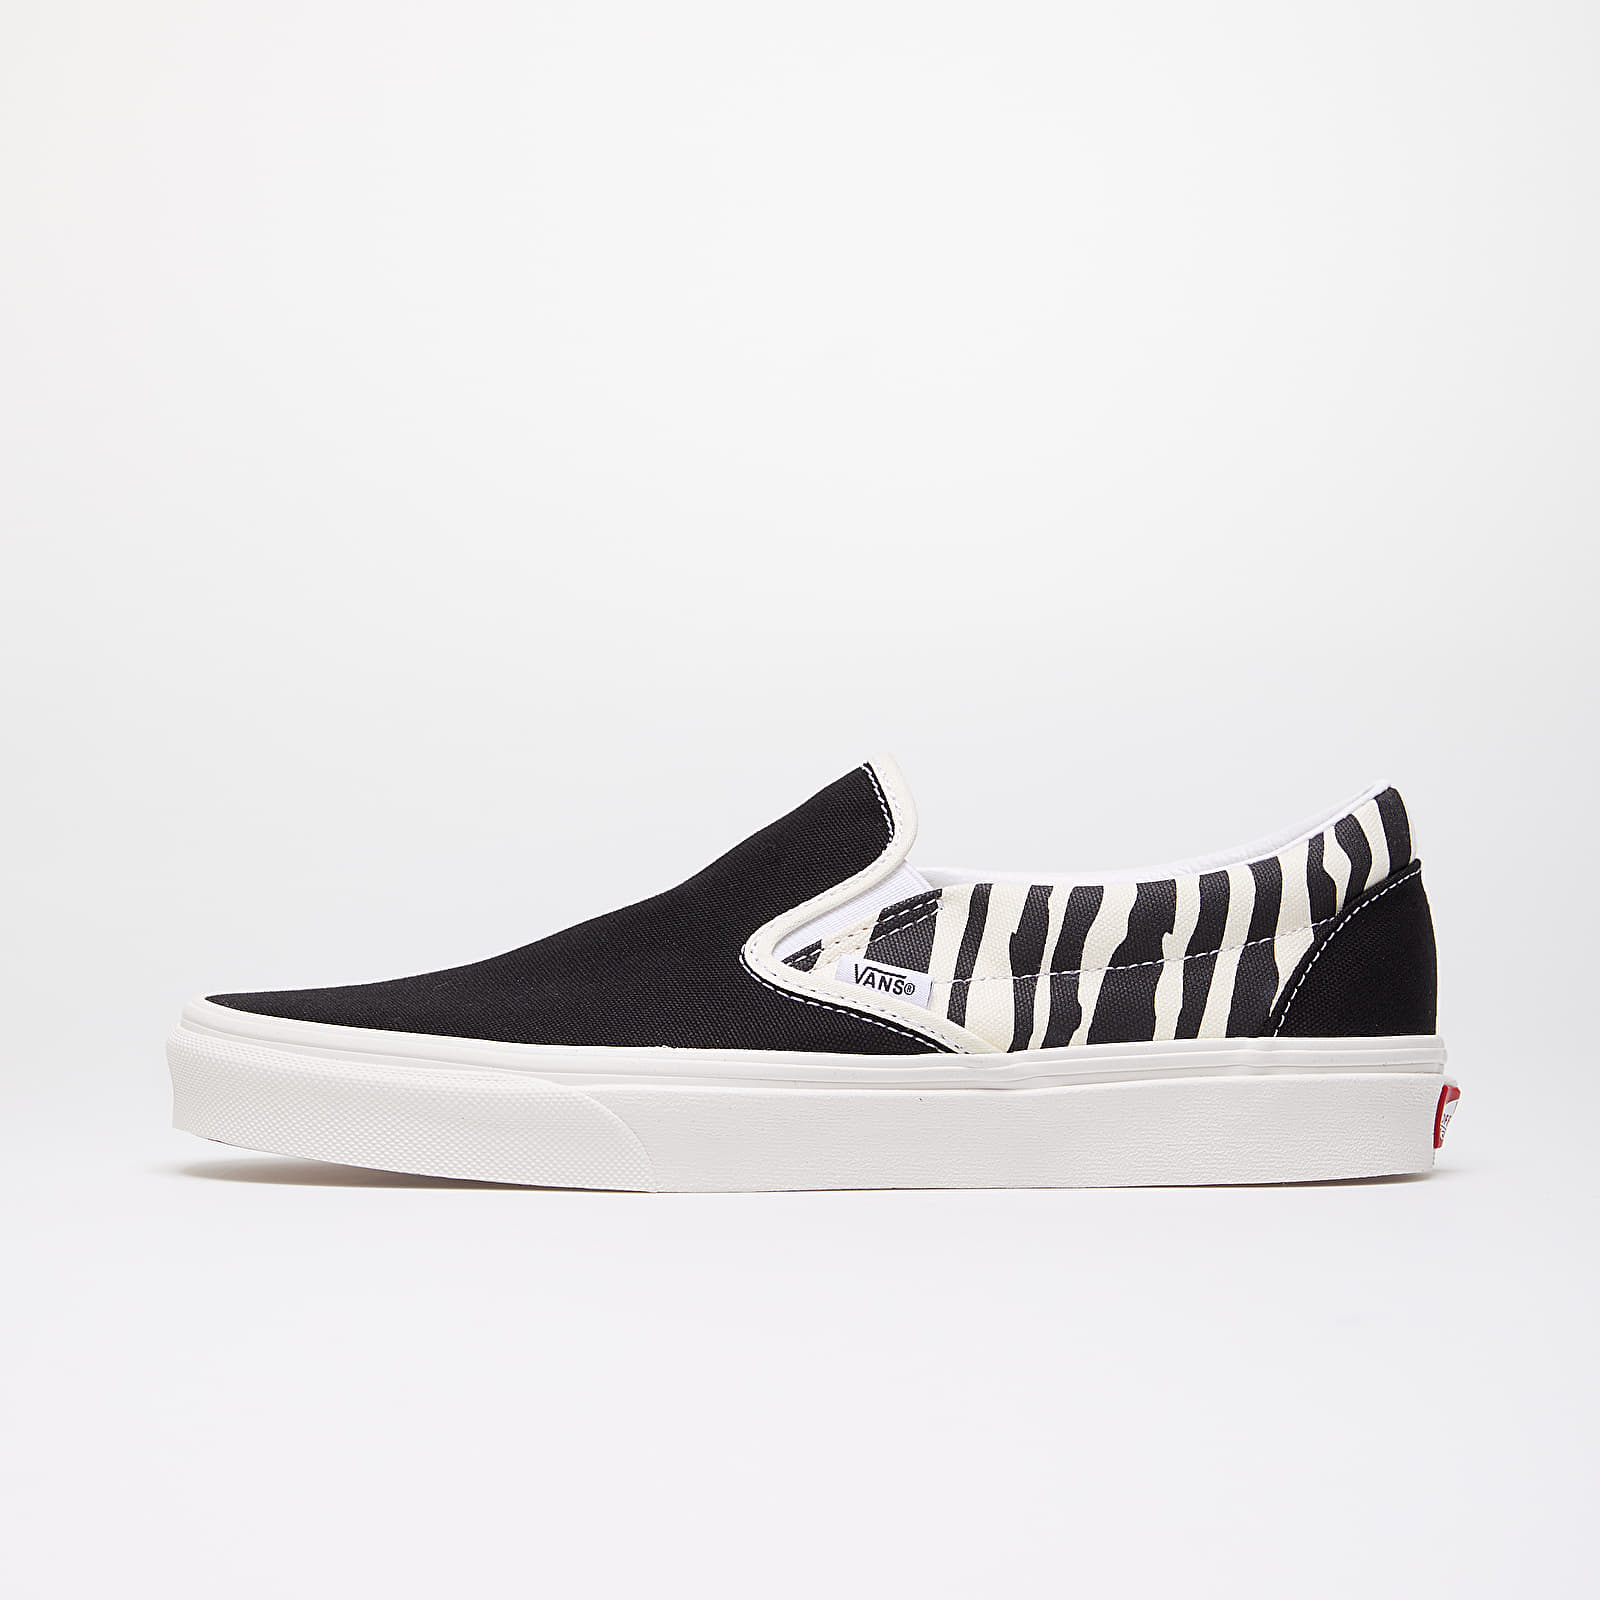 Men's shoes Vans Classic Slip-On (Mismatch) Zebra/ Camo